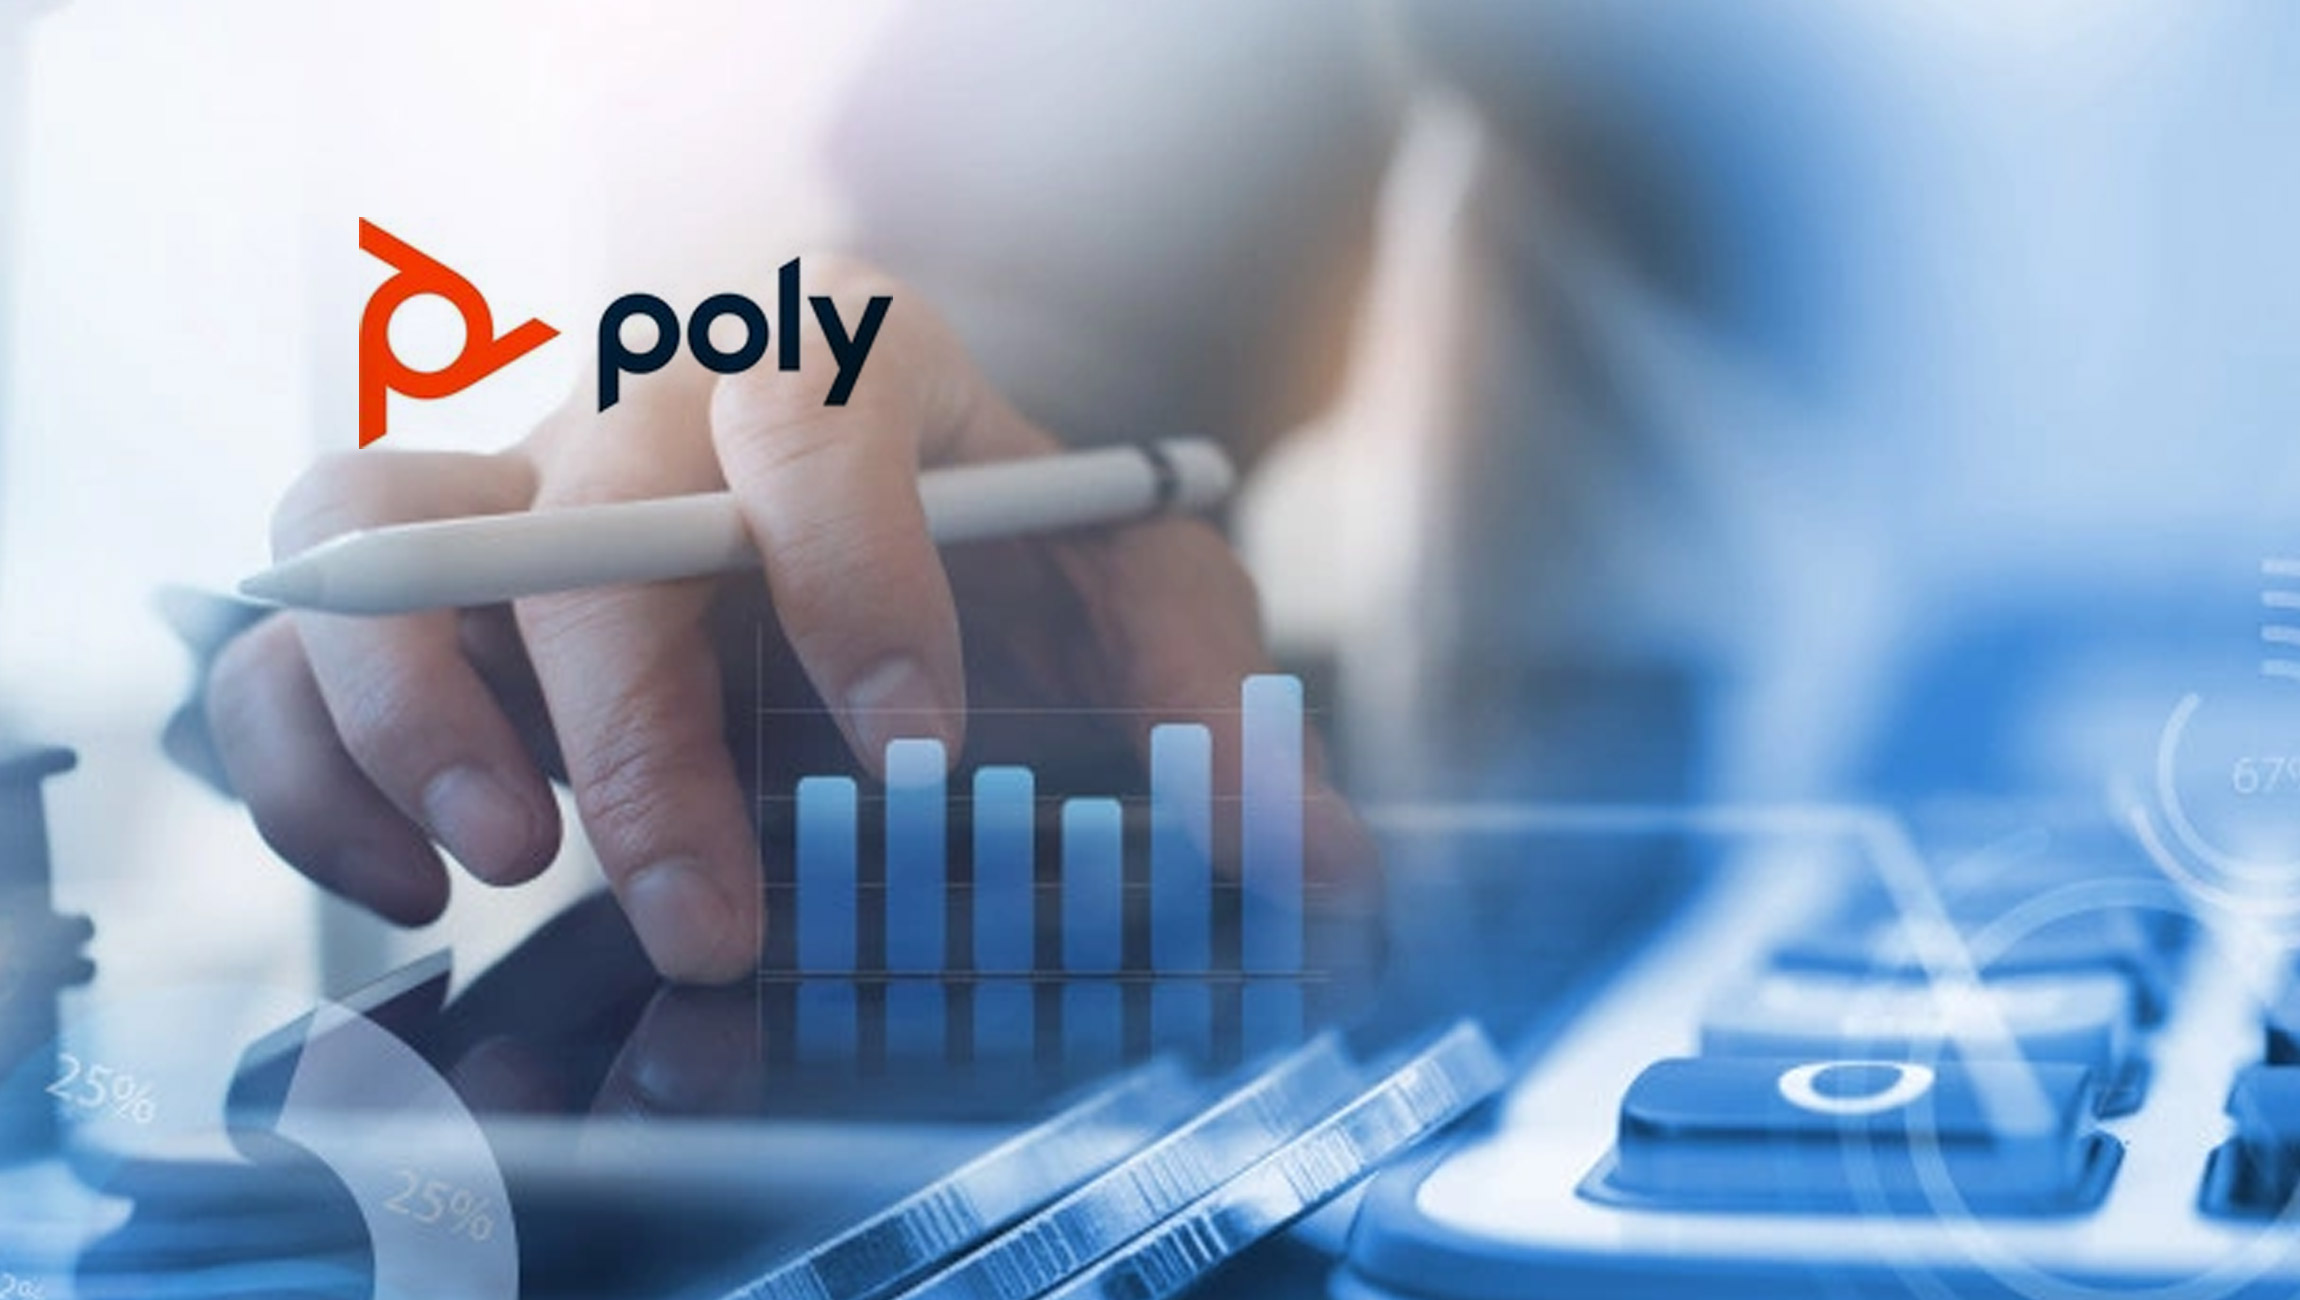 Poly-Executes-Interest-Rate-Hedge-to-Reduce-Interest-Rate-Risk